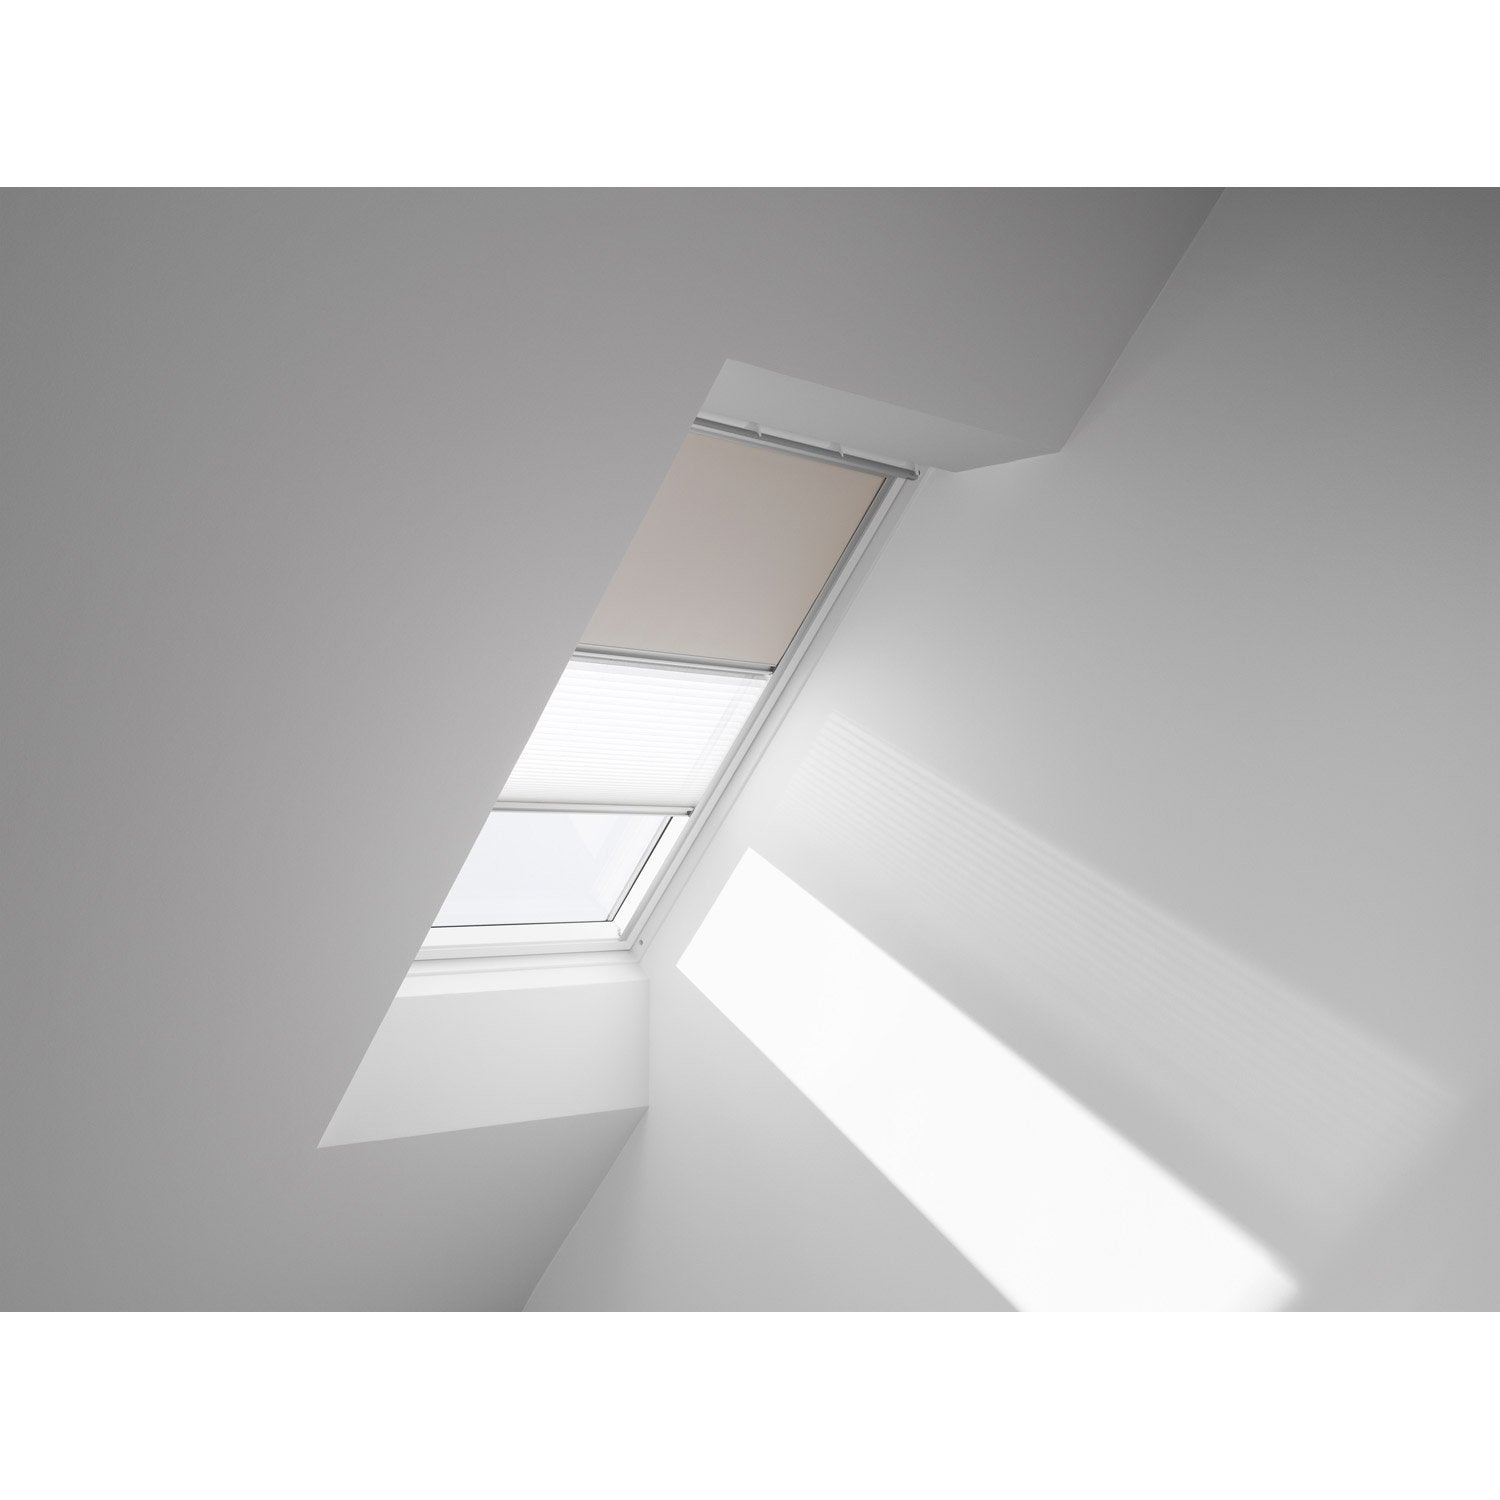 Store Velux Ggl Uk04 Amazing Velux Ggl Uk Sdn Window For Mm Slate